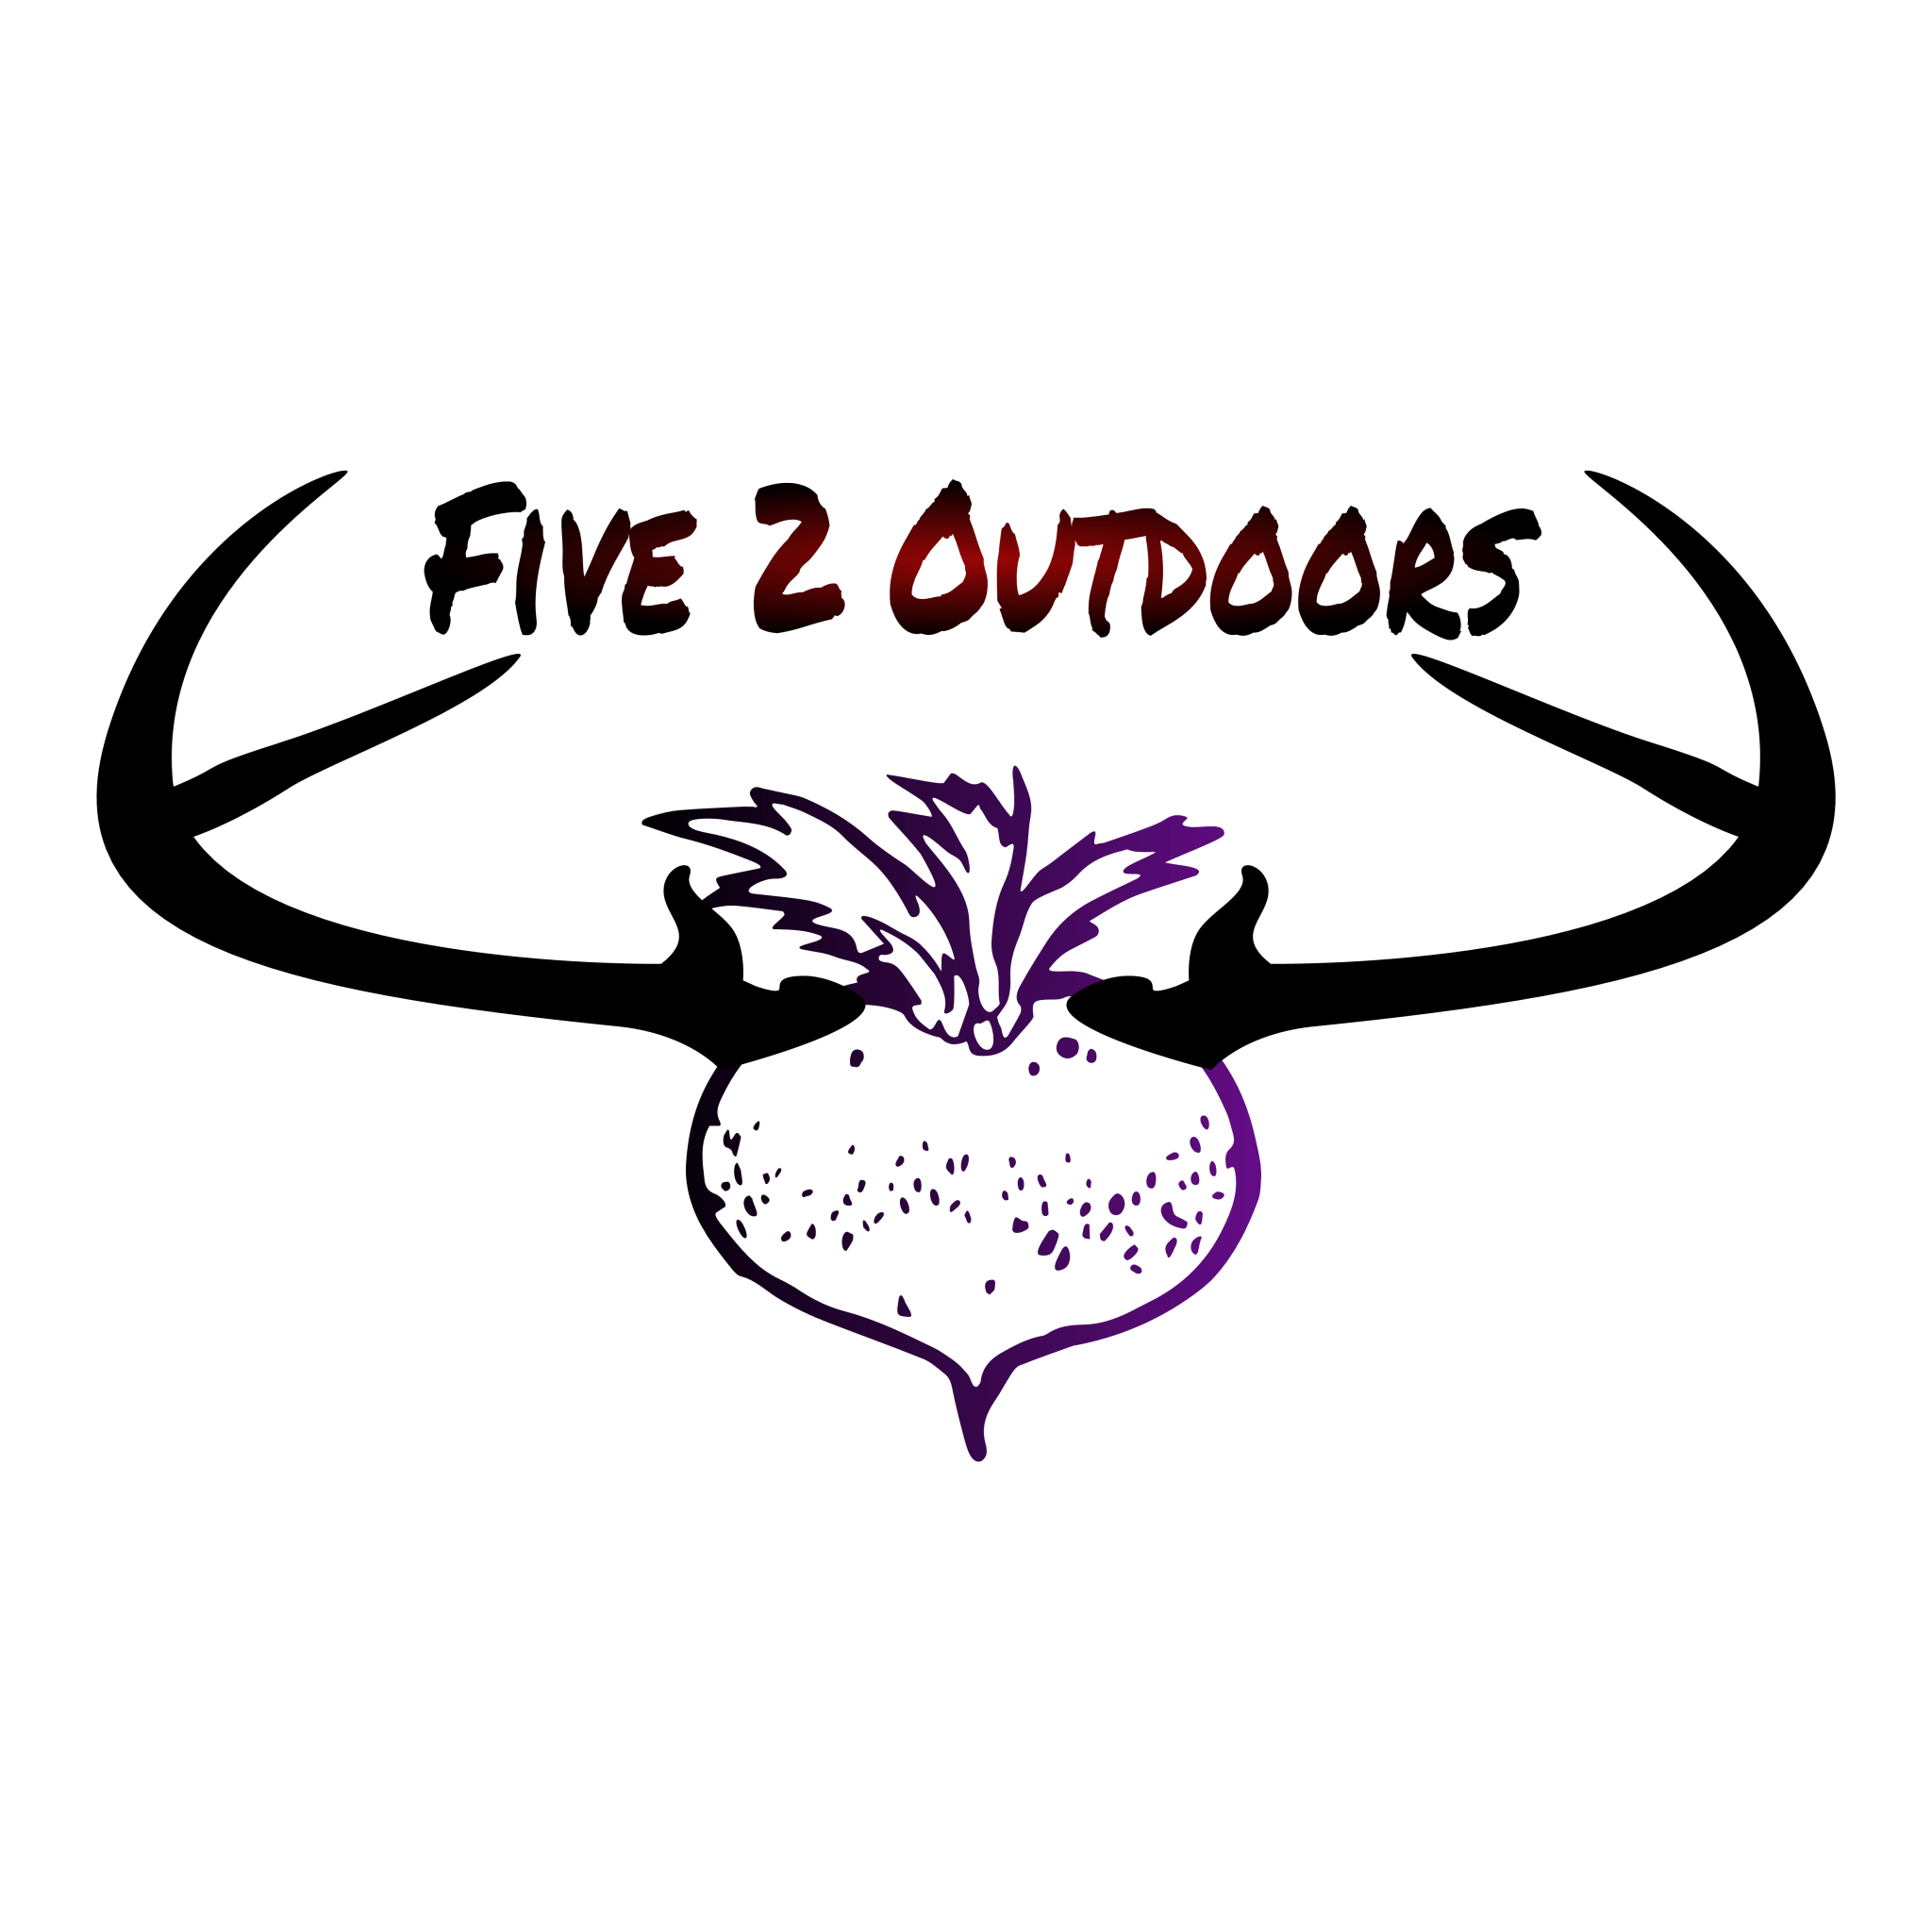 five2outdoors